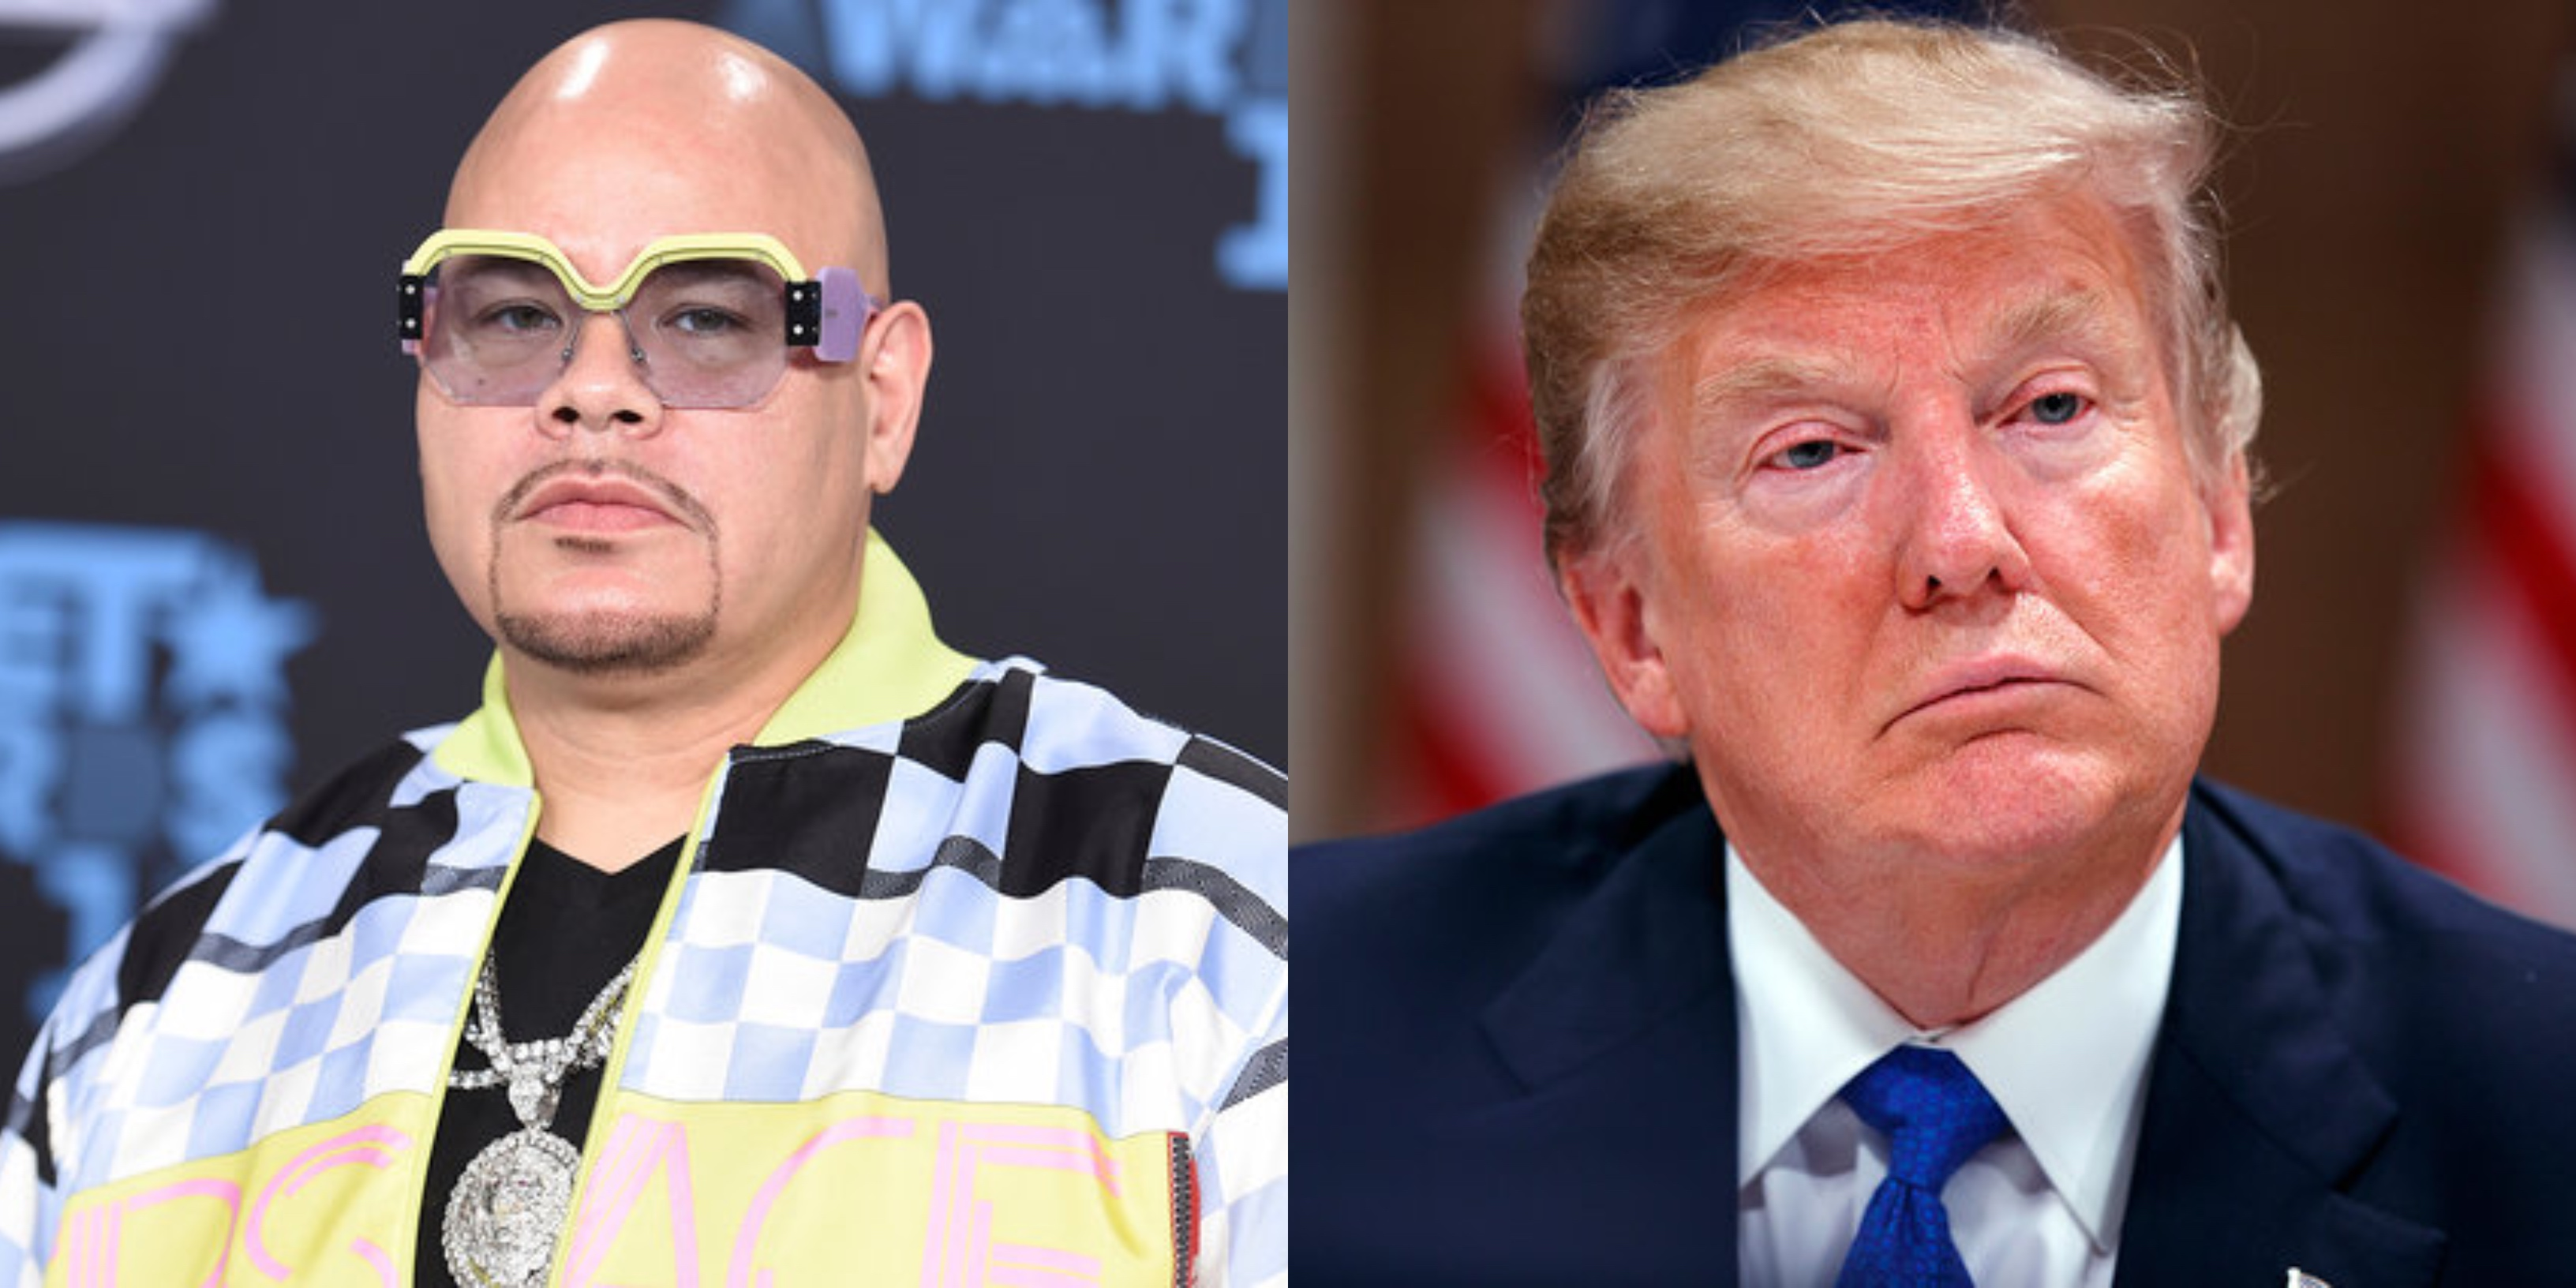 Fat Joe Says President Trump is 'Delusional' for Claims About Hurricane Relief in Puerto Rico